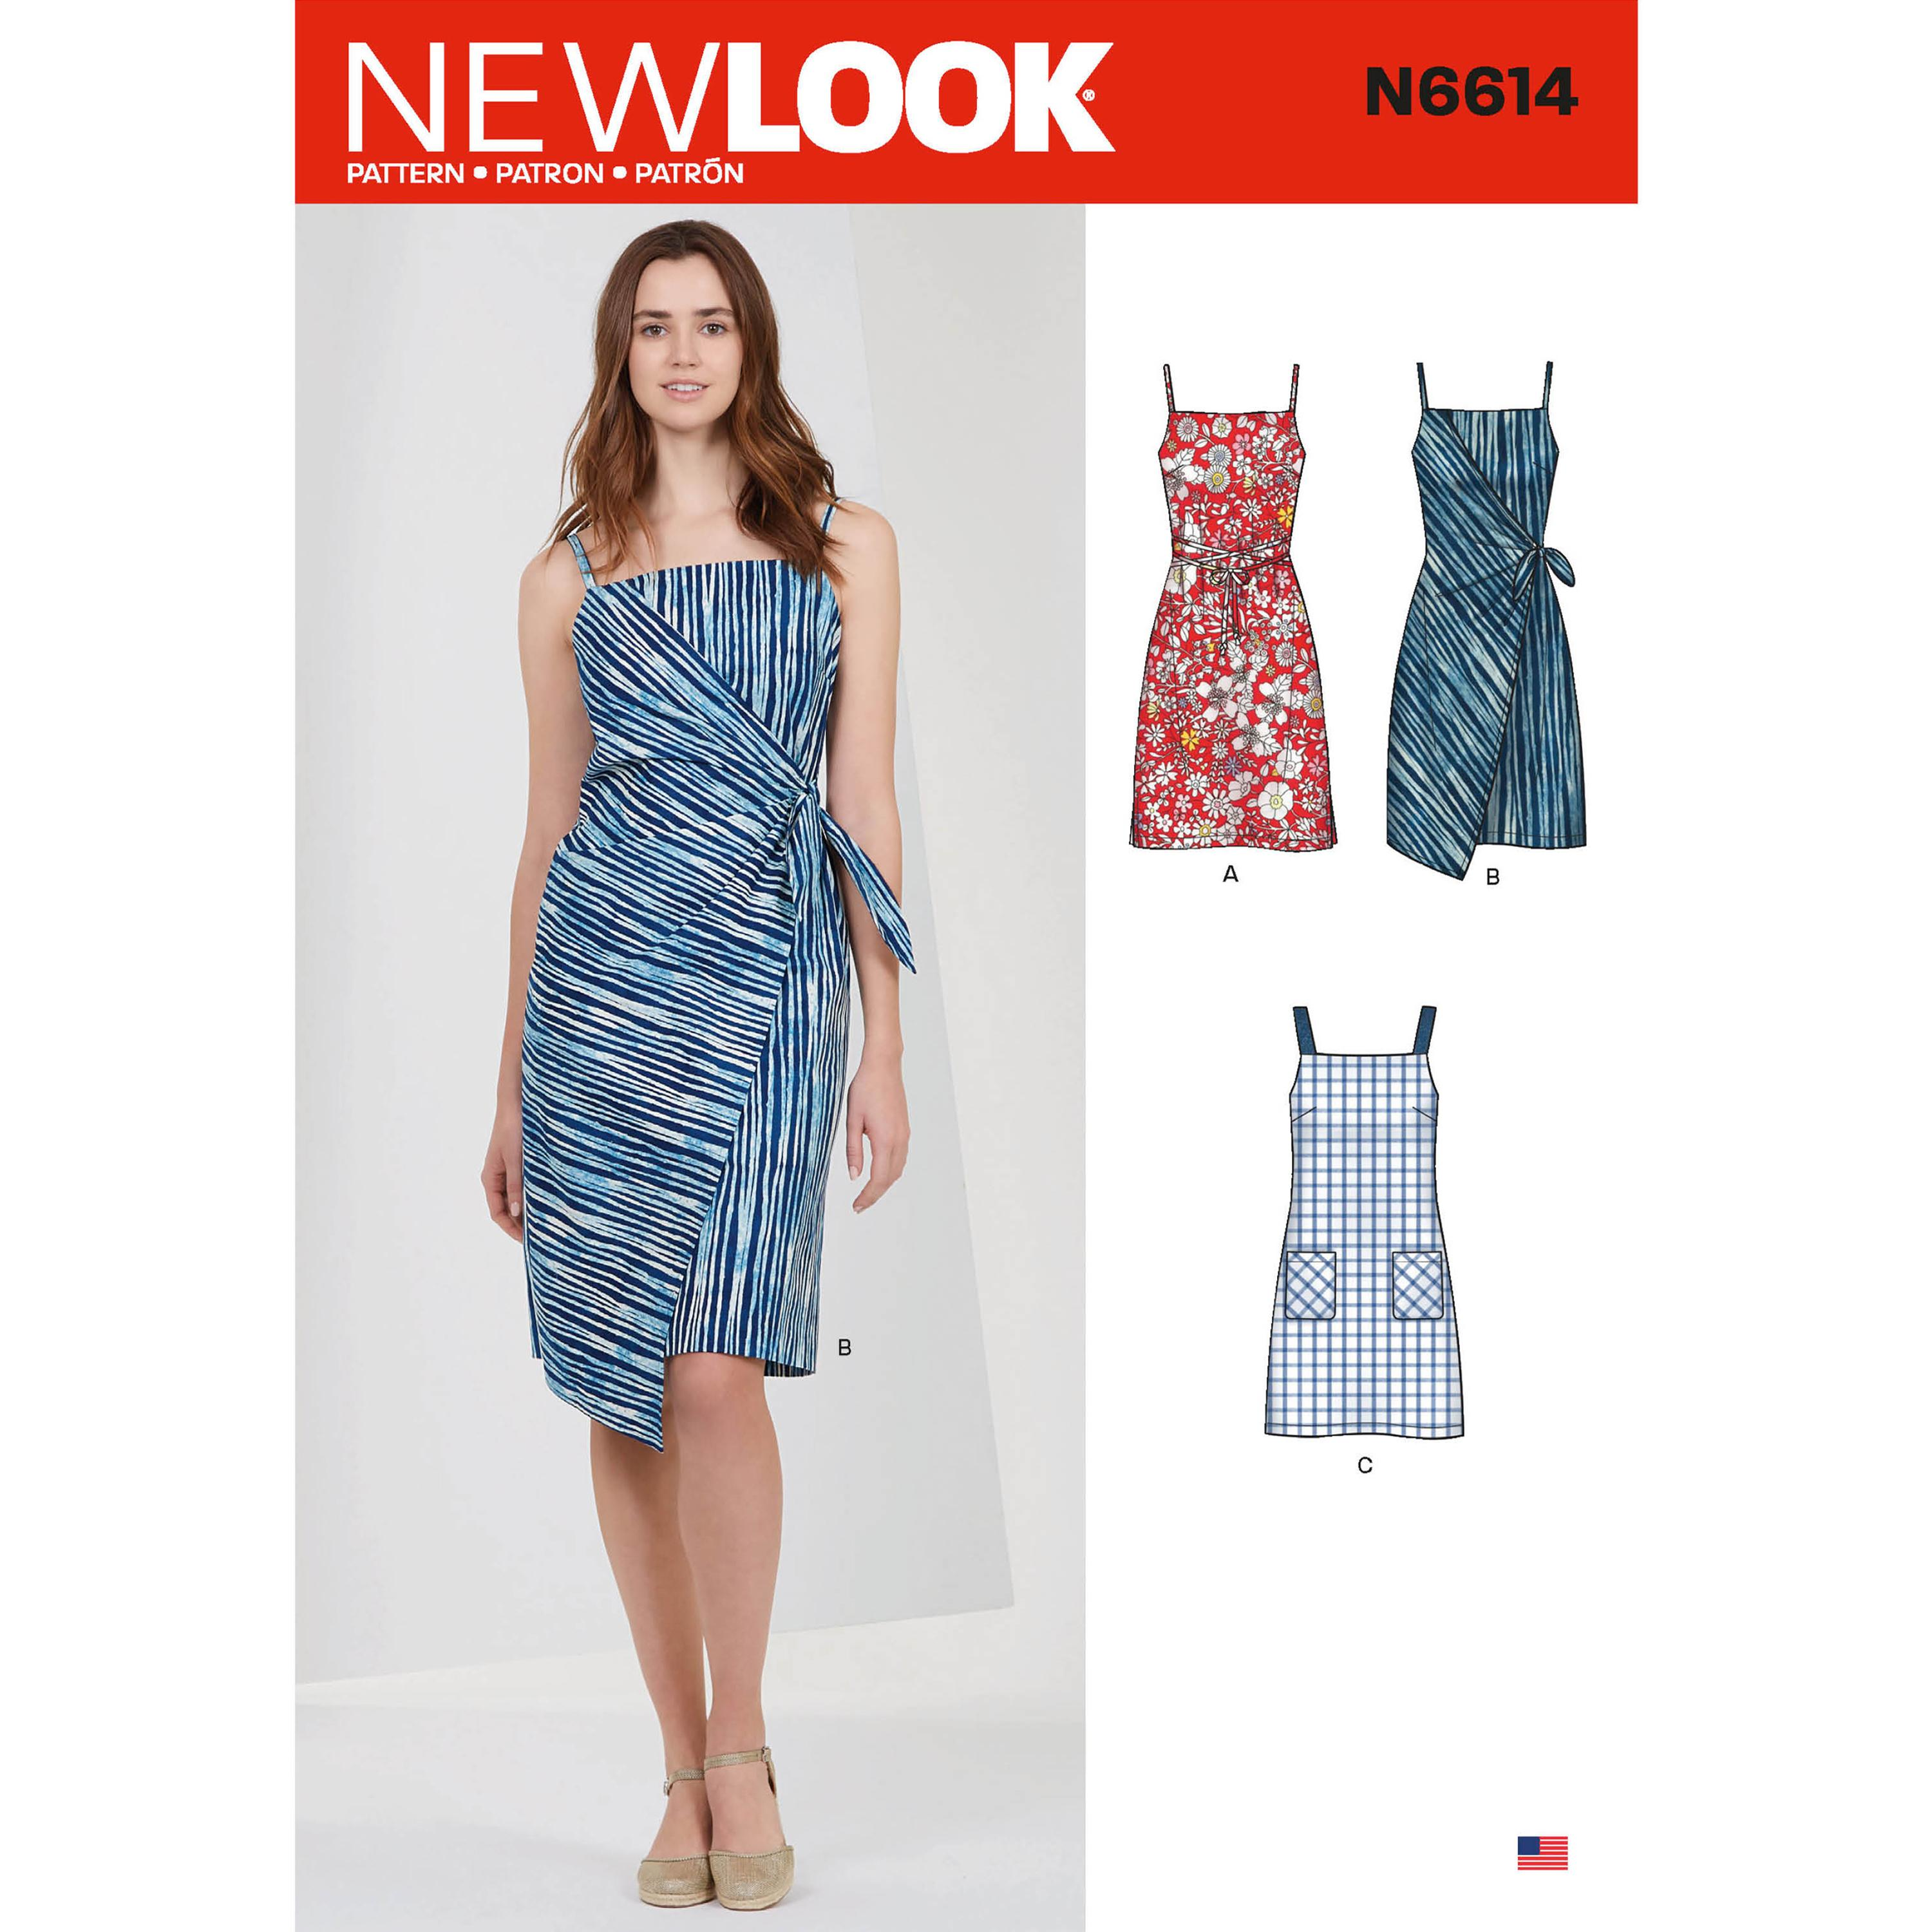 NewLook Sewing Pattern N6614 Misses' Dresses